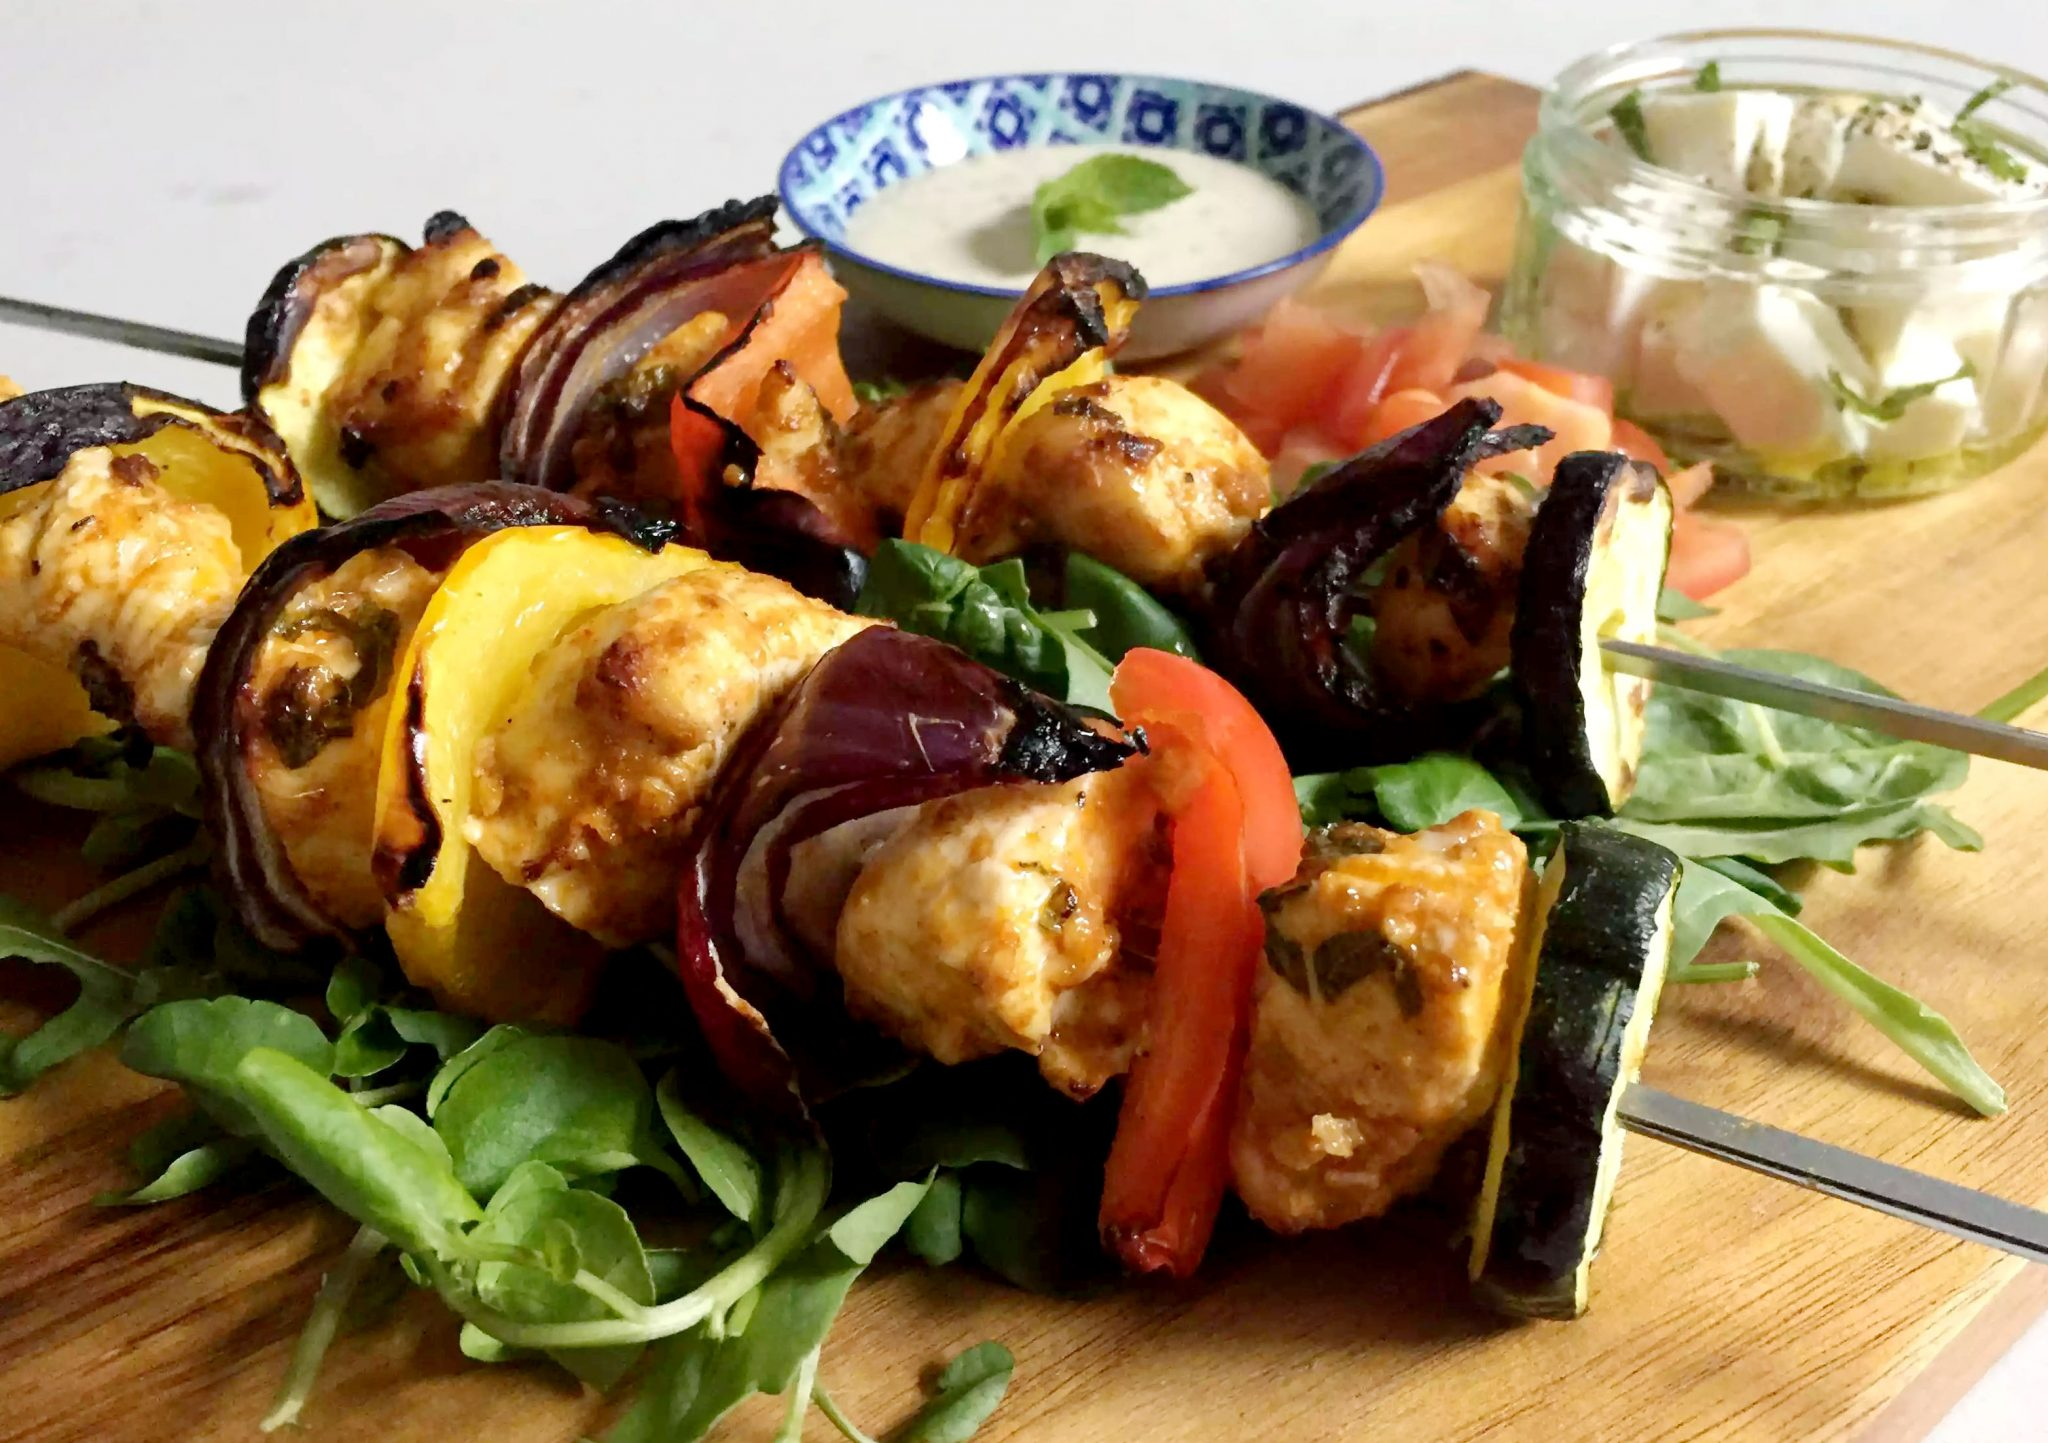 Grilled Moroccan Chicken Skewers with Tahini Sauce